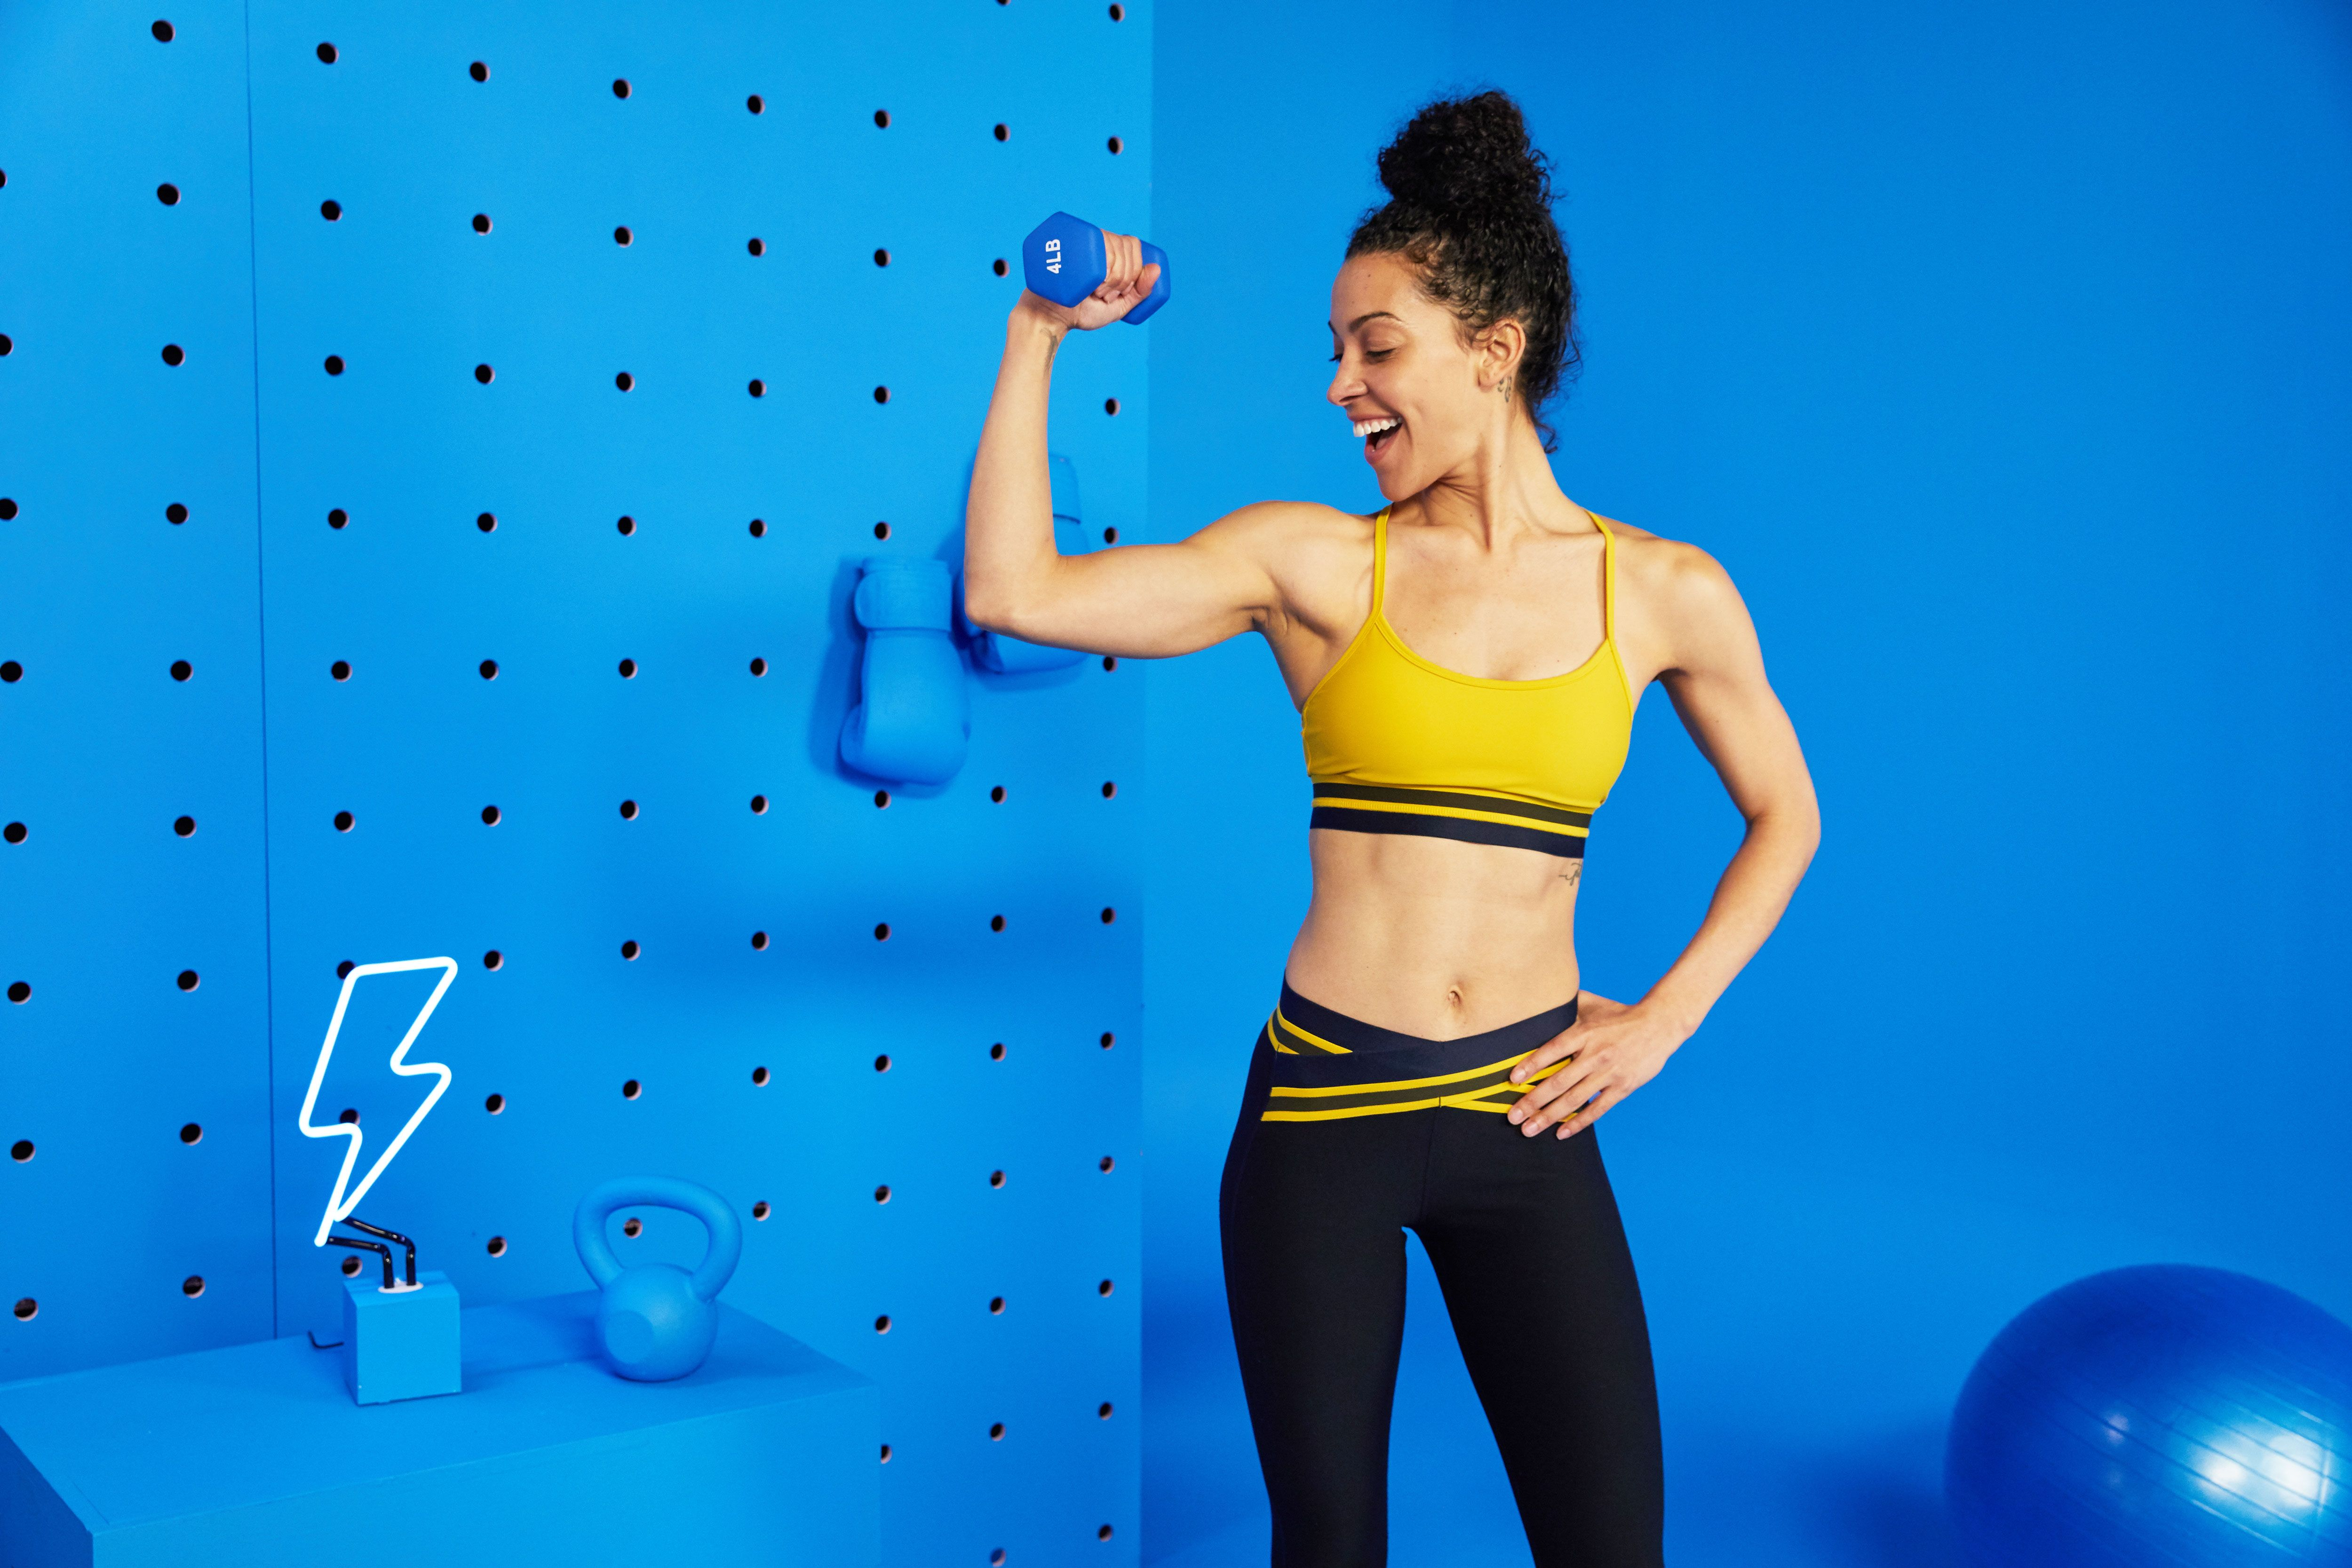 Summer Workout Your 4 Week Summer Workout Plan To Do At Home